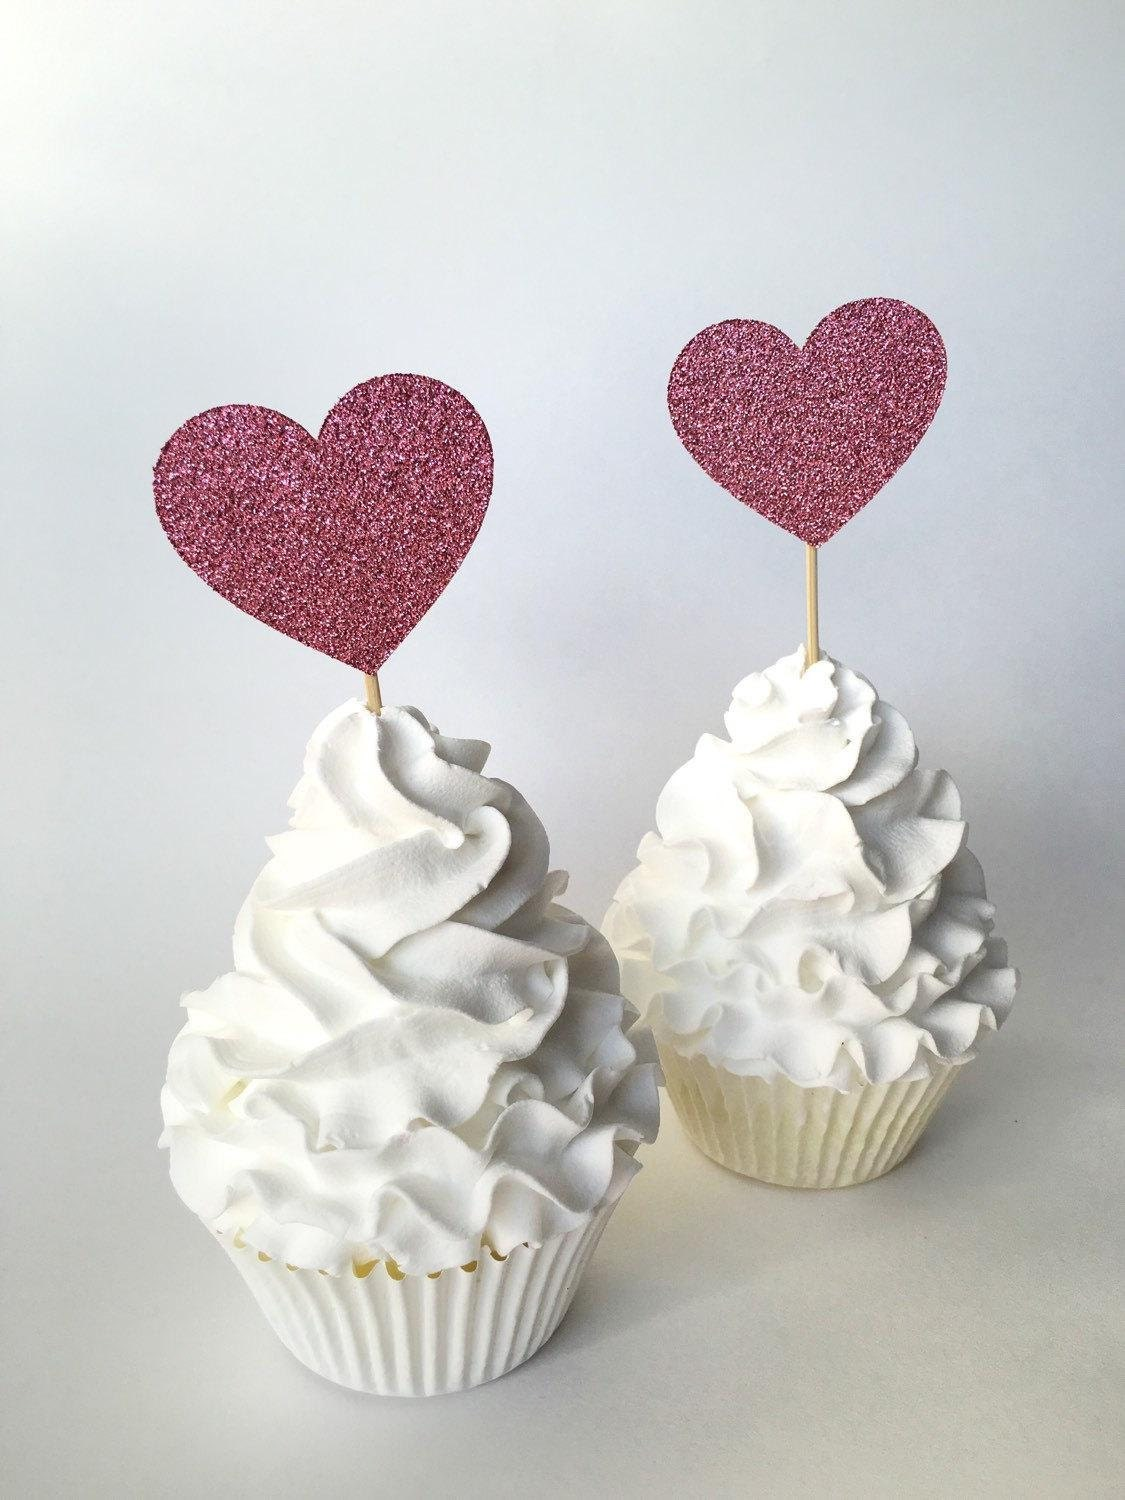 Heart Cupcake Toppers Pink Glitter Heart Toothpick 2